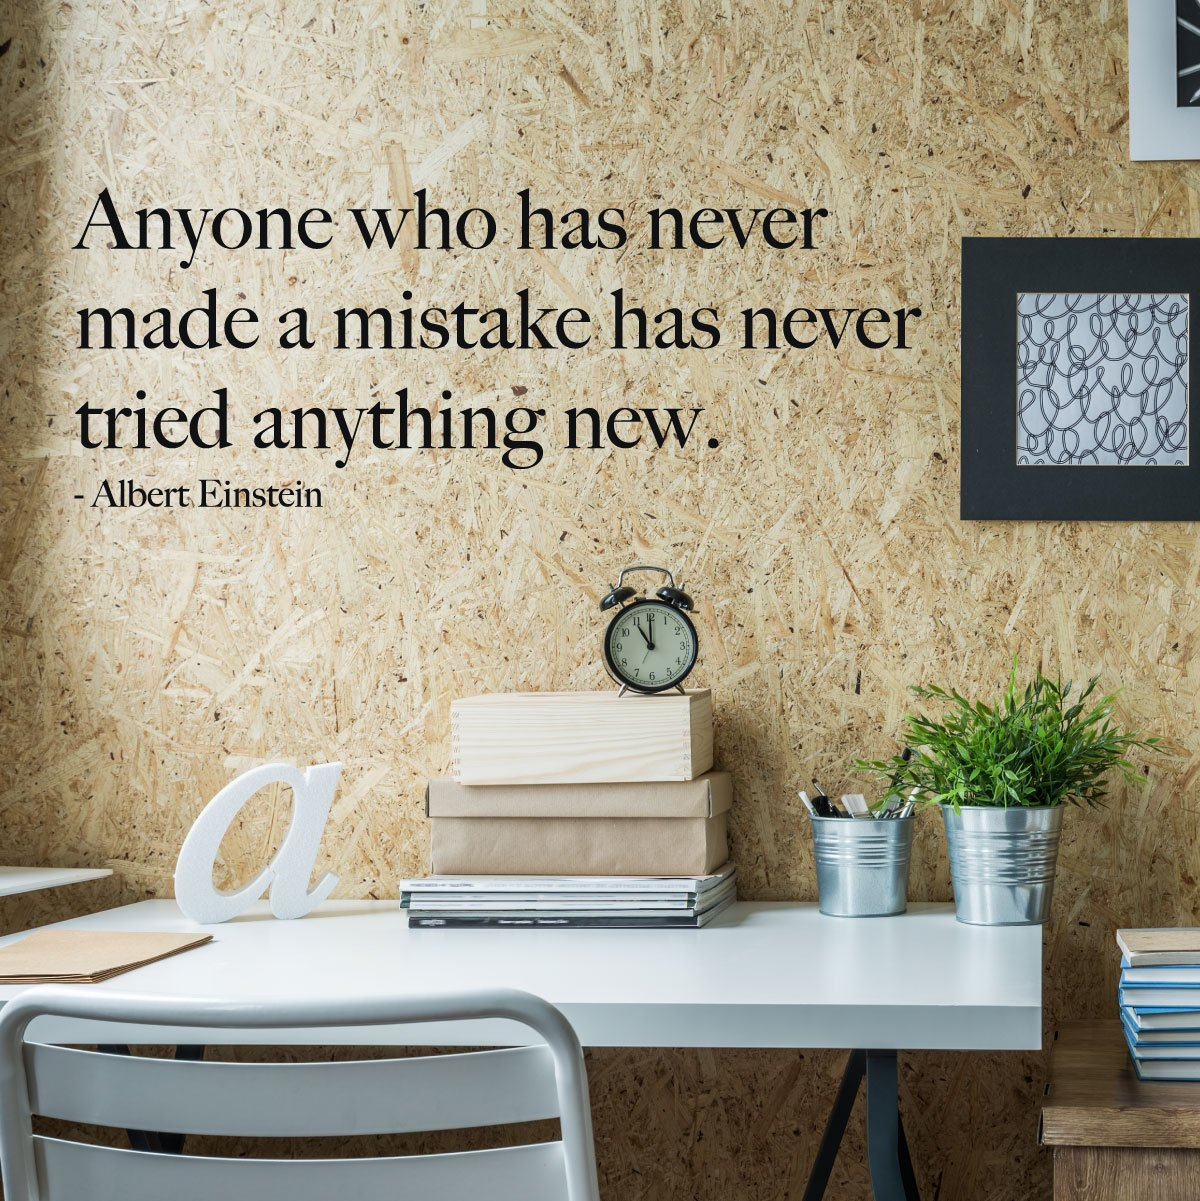 Albert Einstein Wall Decals - Anyone Who Has Never Made A Mistake - Vinyl Decoration for the Home, Office or Classroom Decor